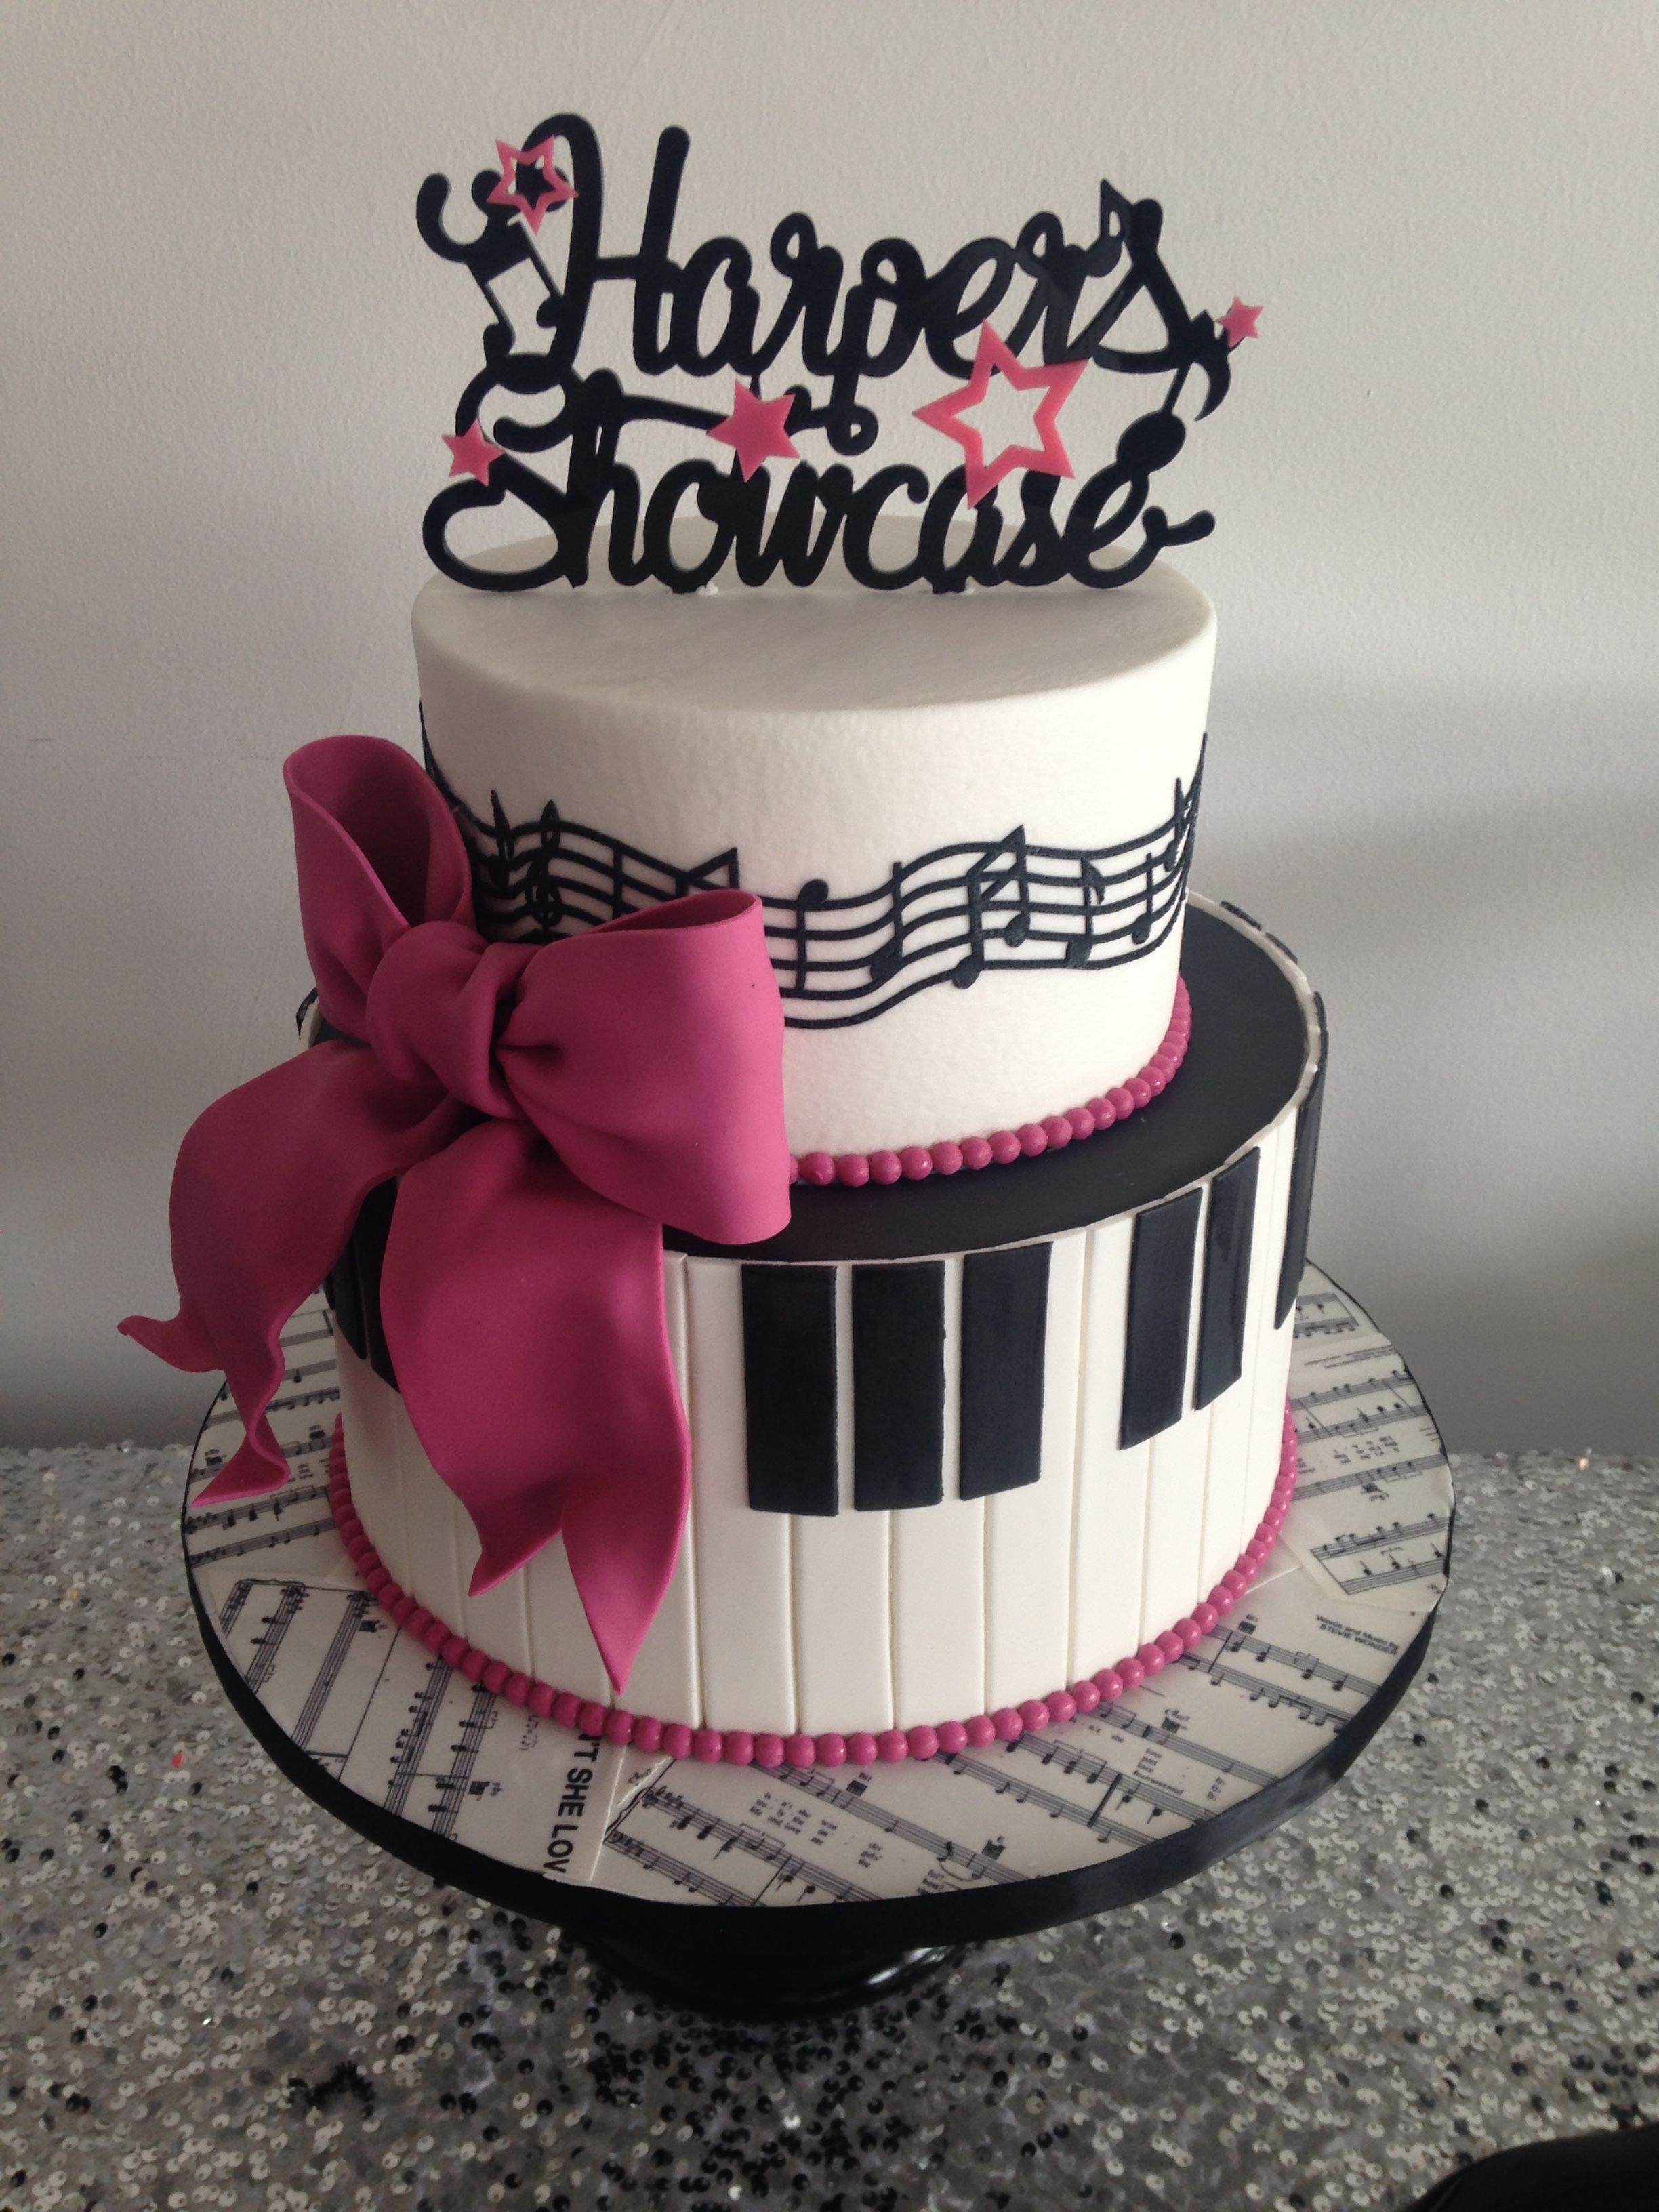 Music Birthday Cakes For The Love Of Little Girls Piano Keys And